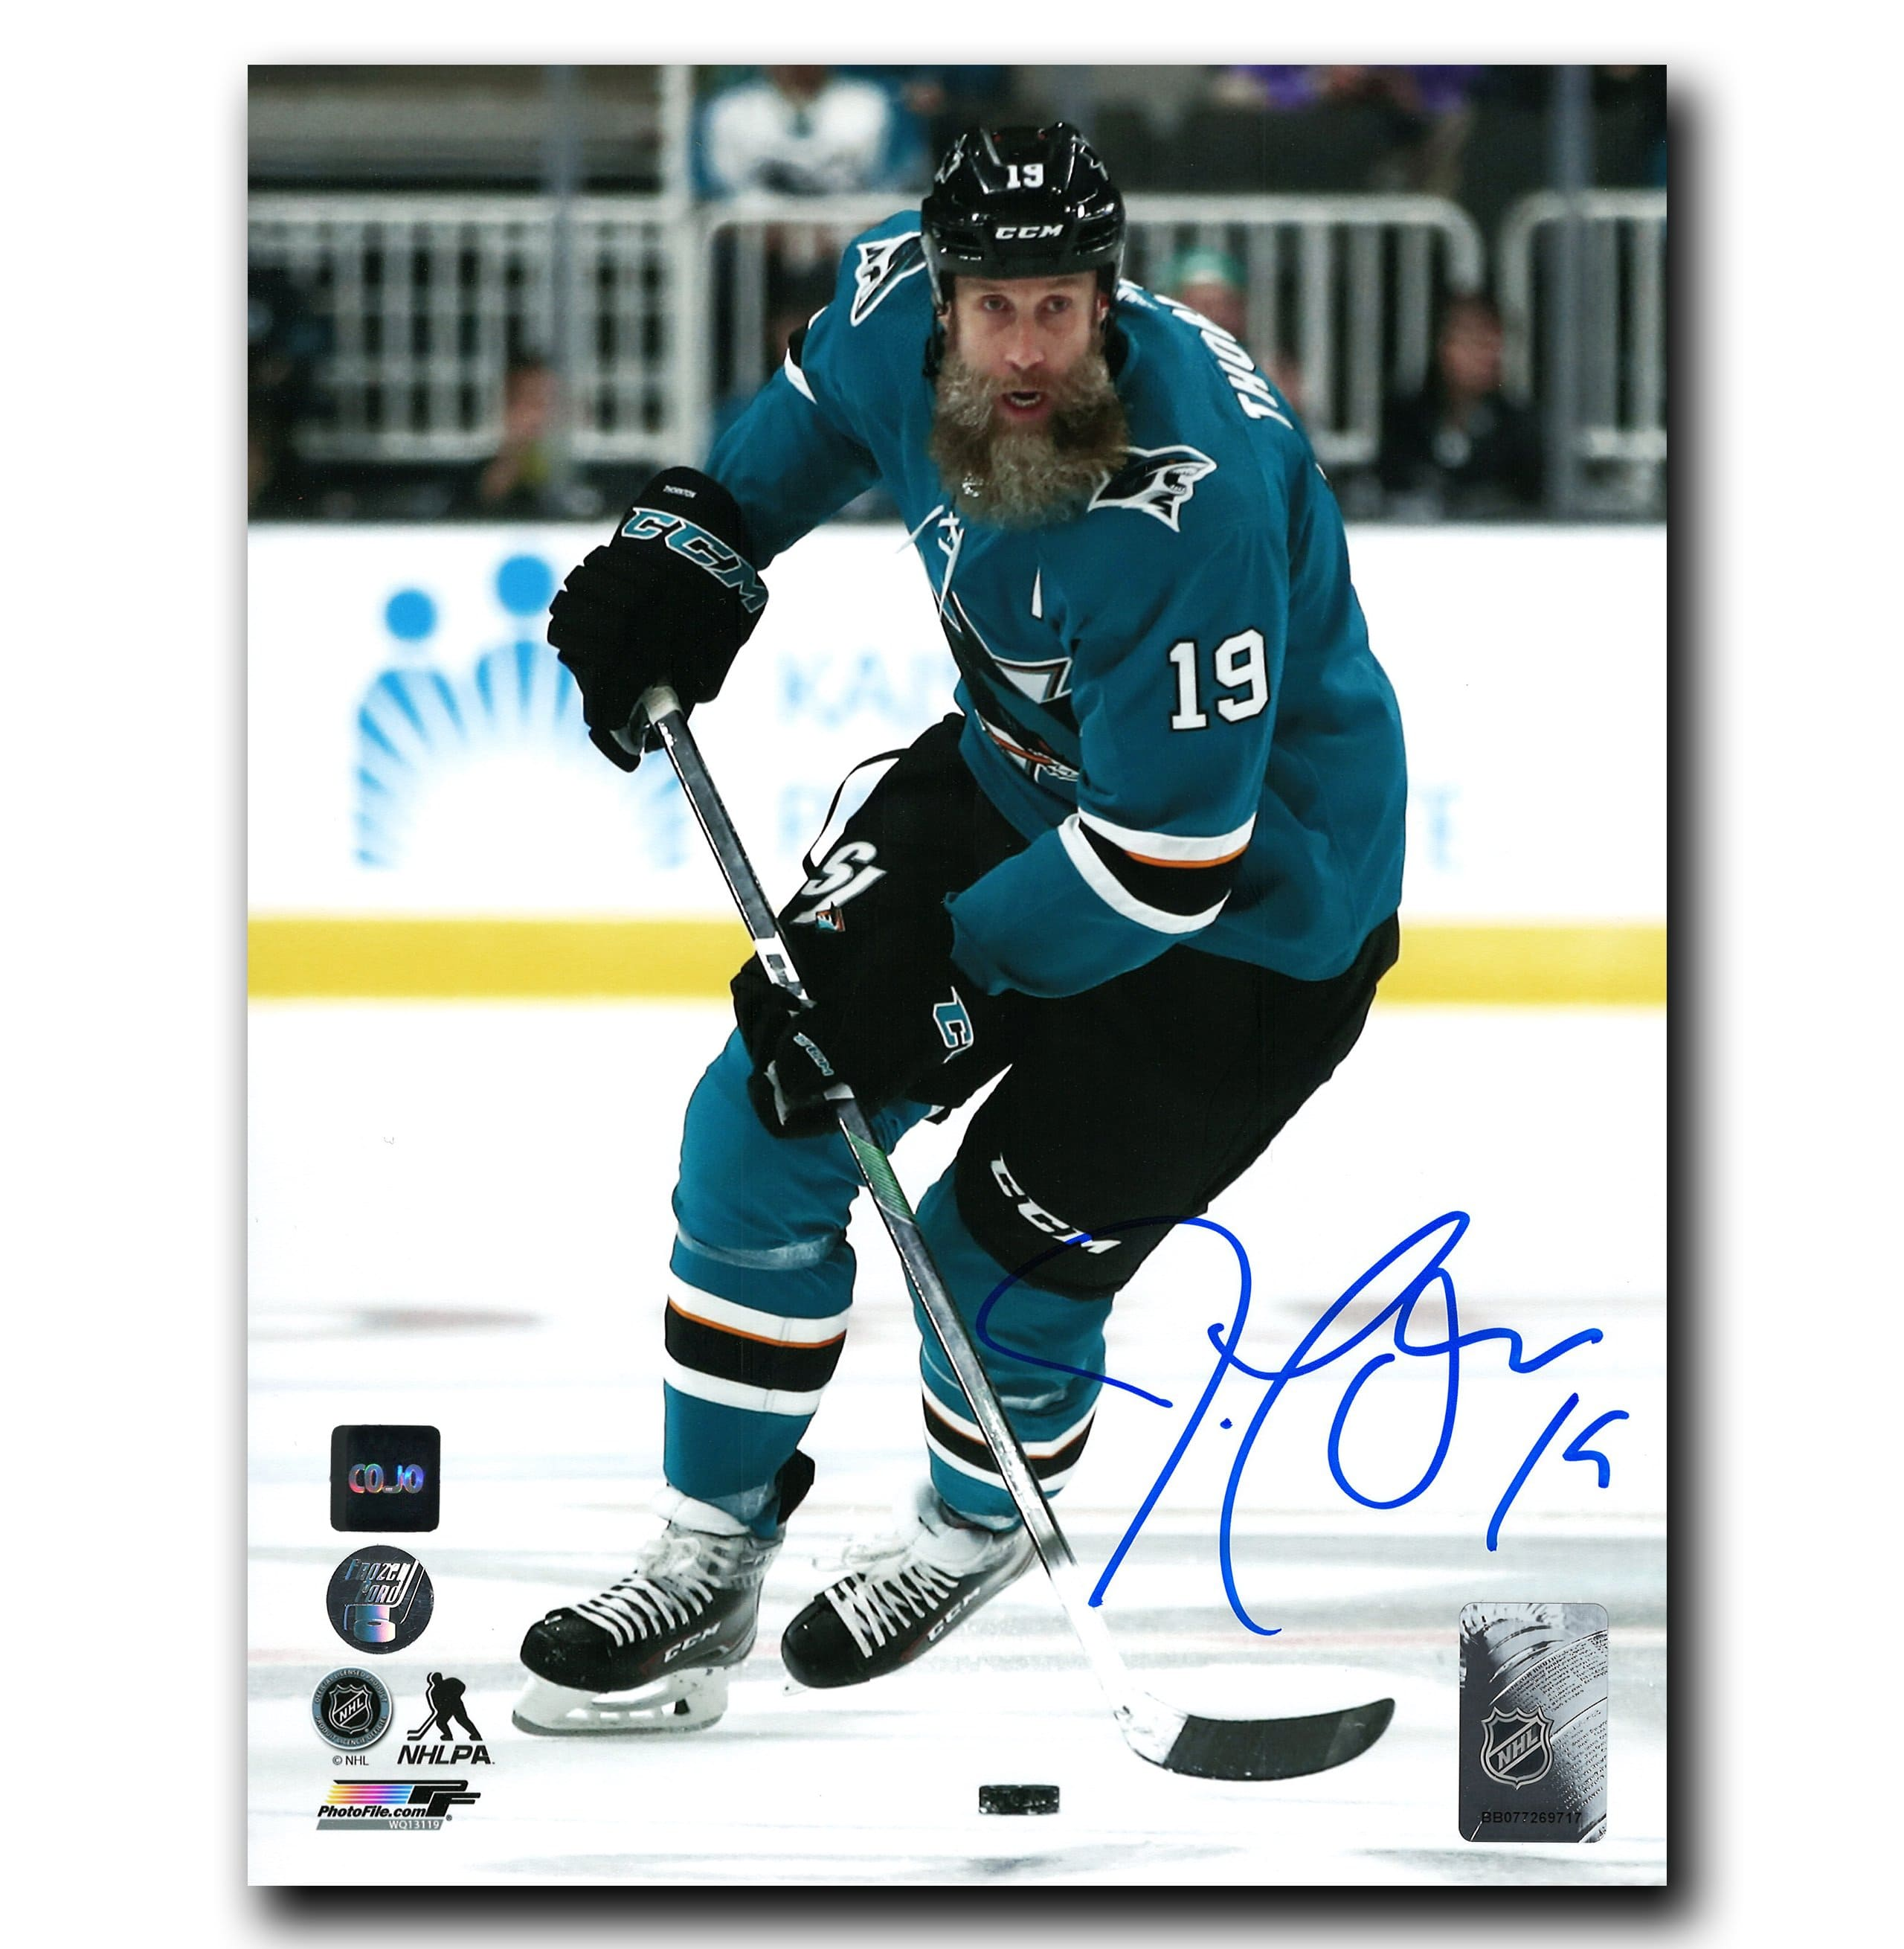 Joe Thornton San Jose Sharks Autographed Action 8x10 Photo